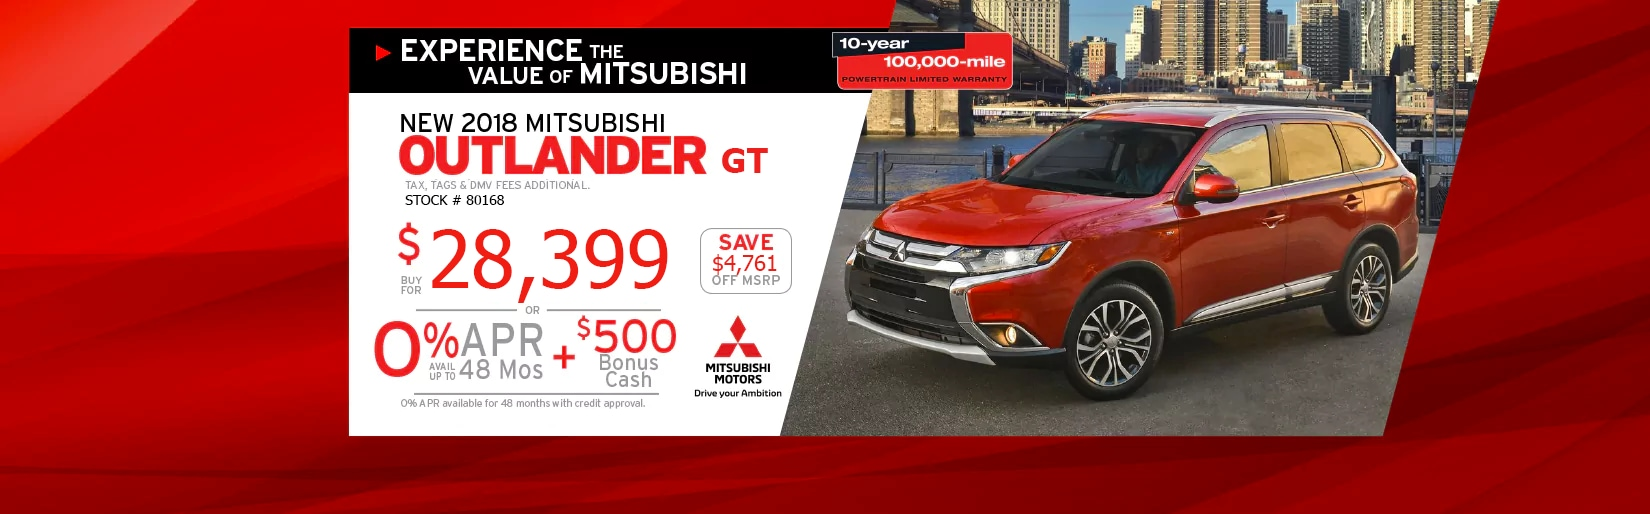 ct mitsubishi cuv in used fairfield dealership new car dealers